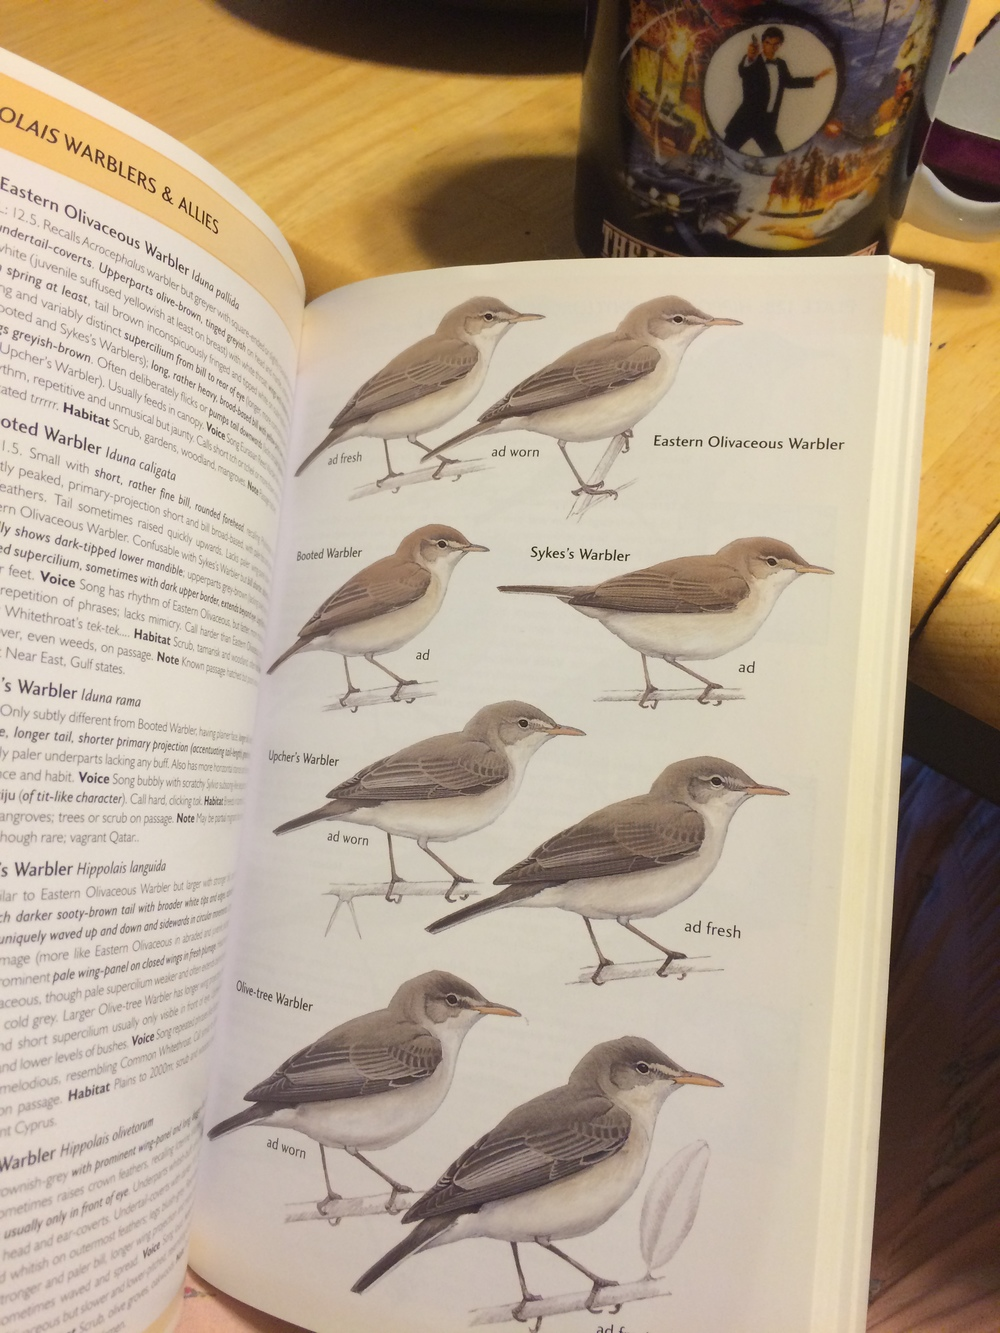 I swear, there are four different species of warbler on this page.